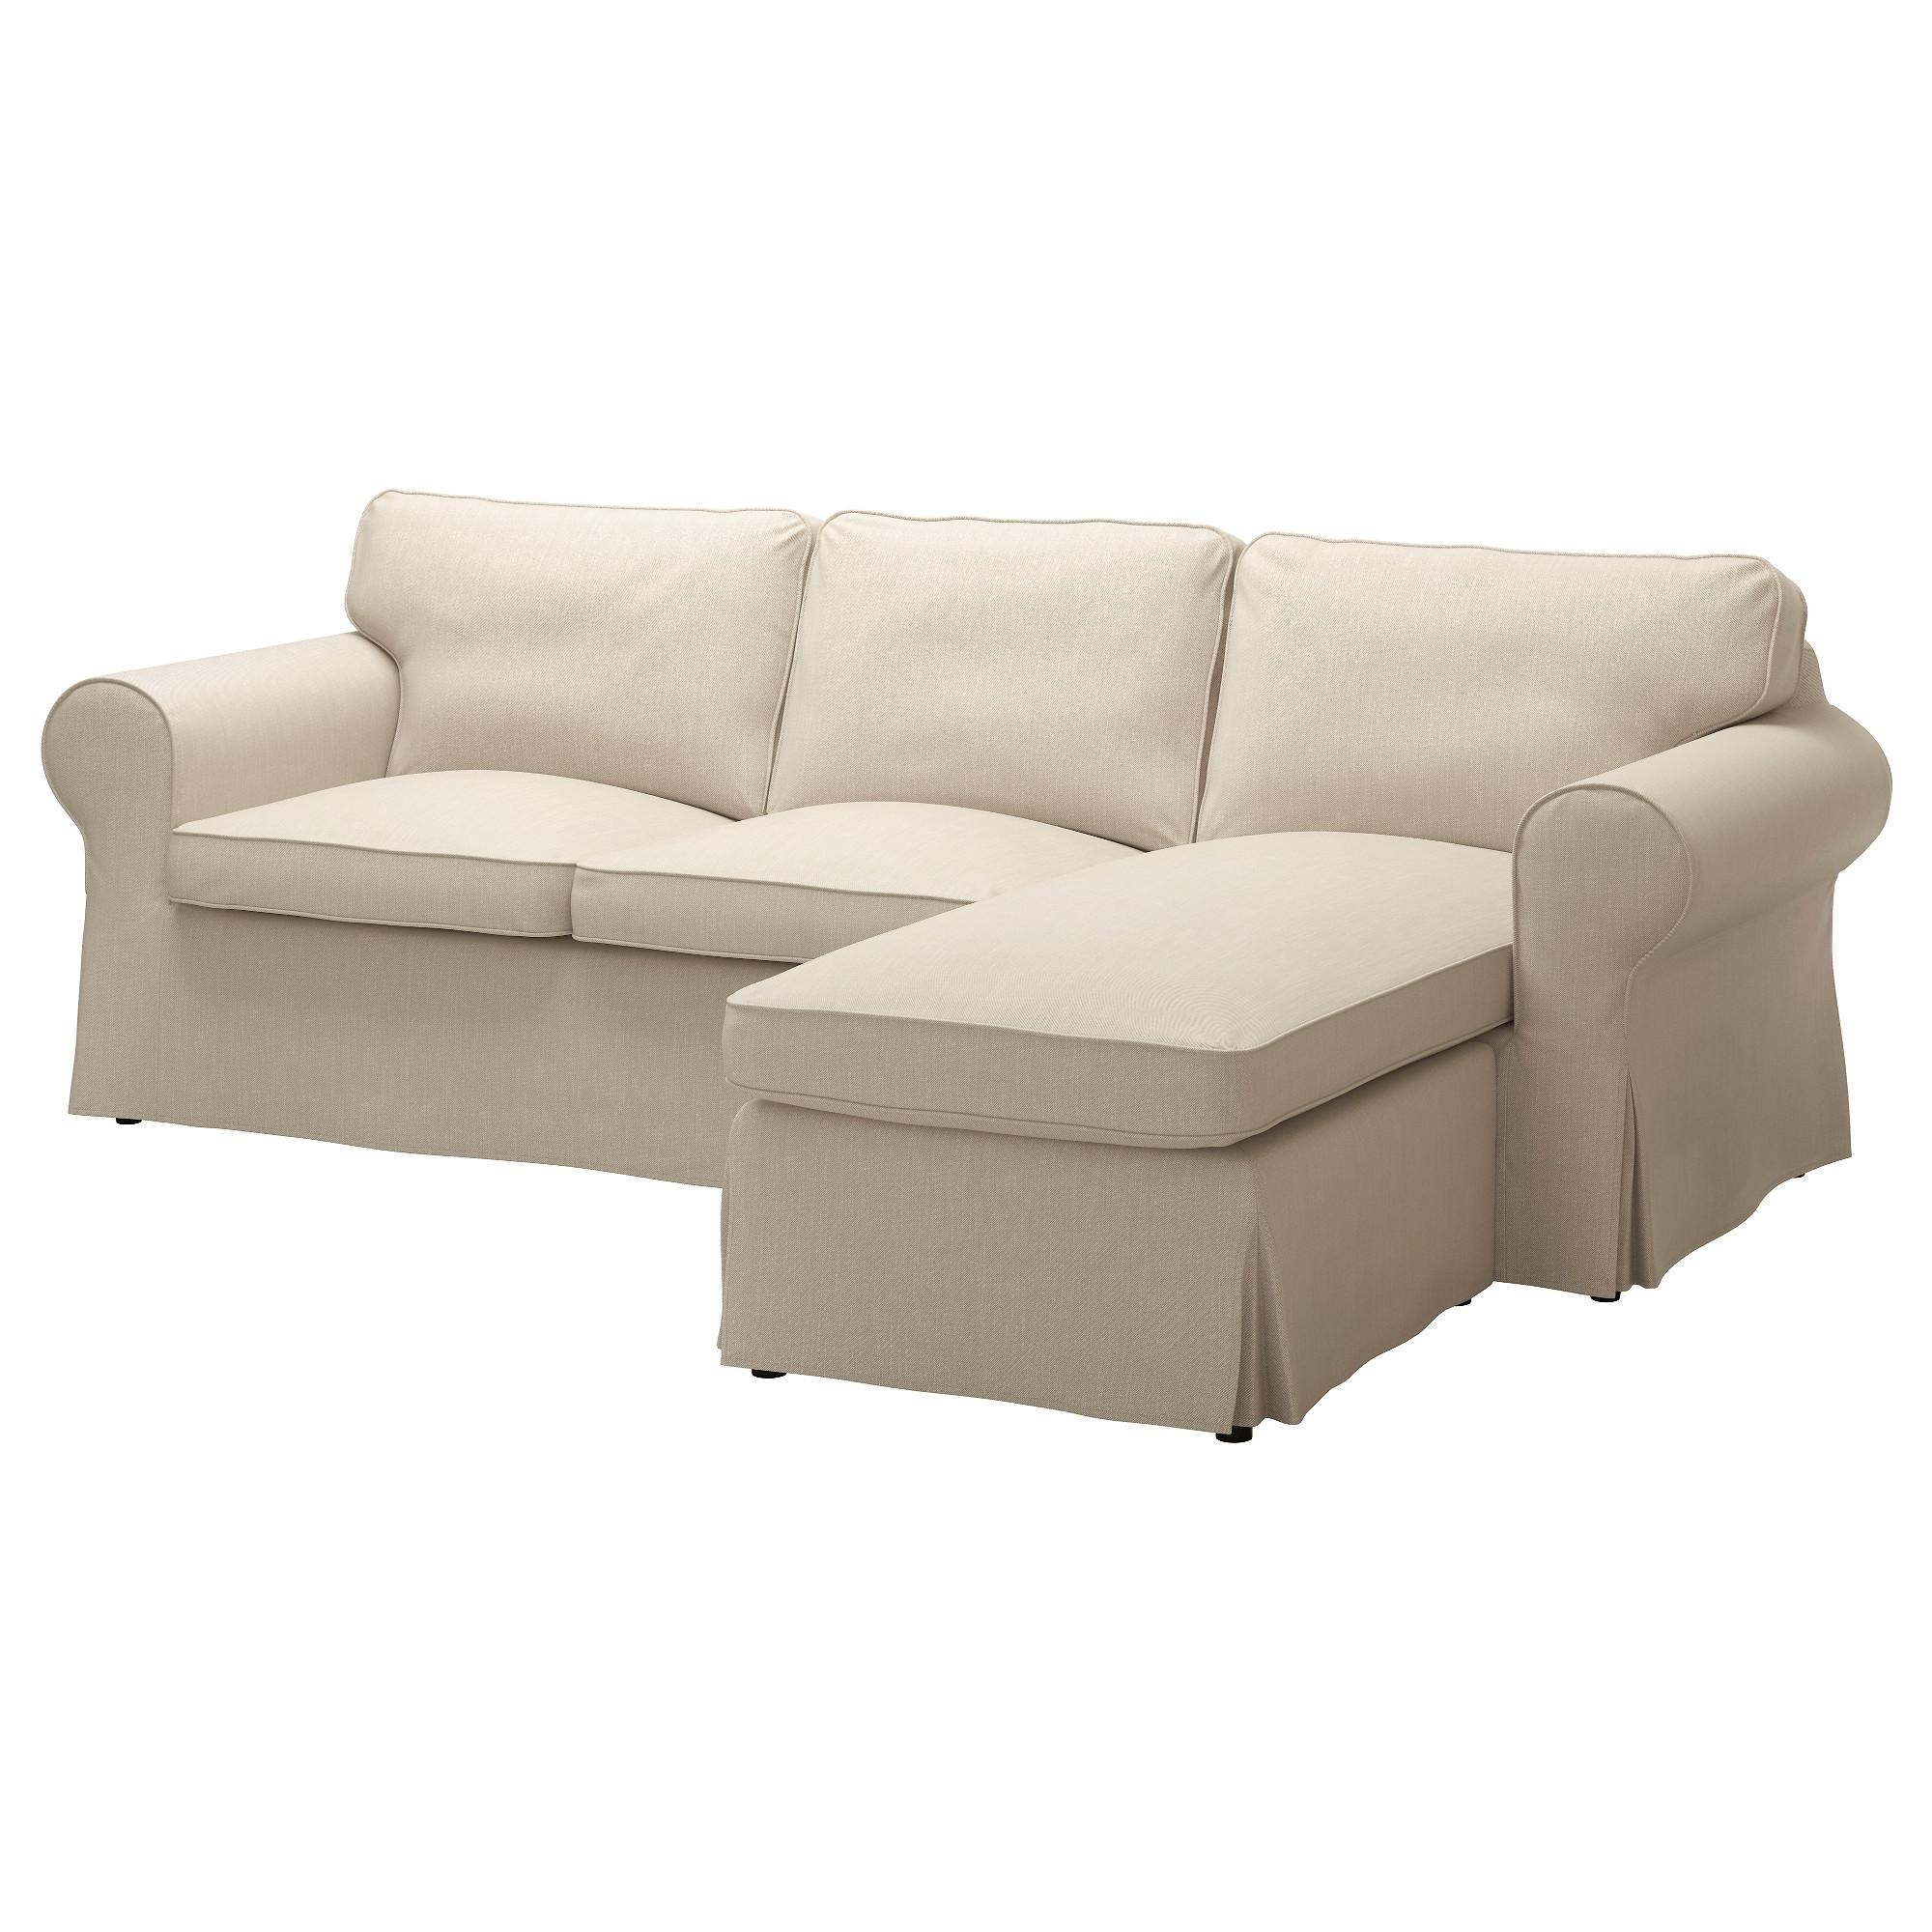 20 choices of ikea two seater sofas sofa ideas for 2 seater chaise sofa